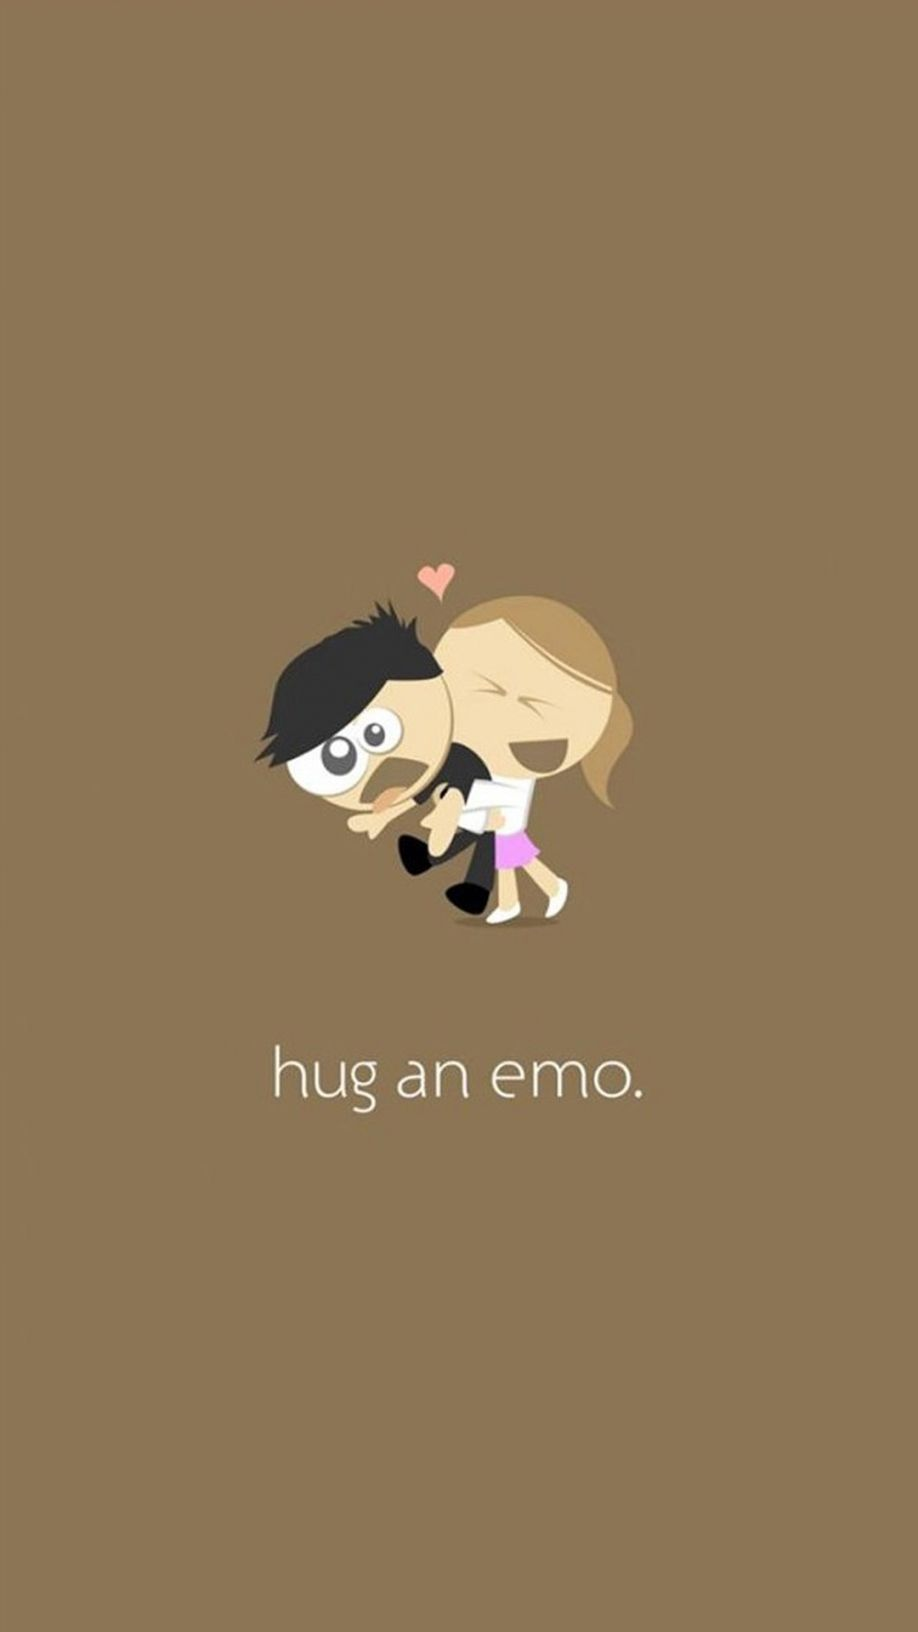 918x1632 Cute Emo Wallpapers For Iphone - Awesome 3D Wallpapers | Abstract ...